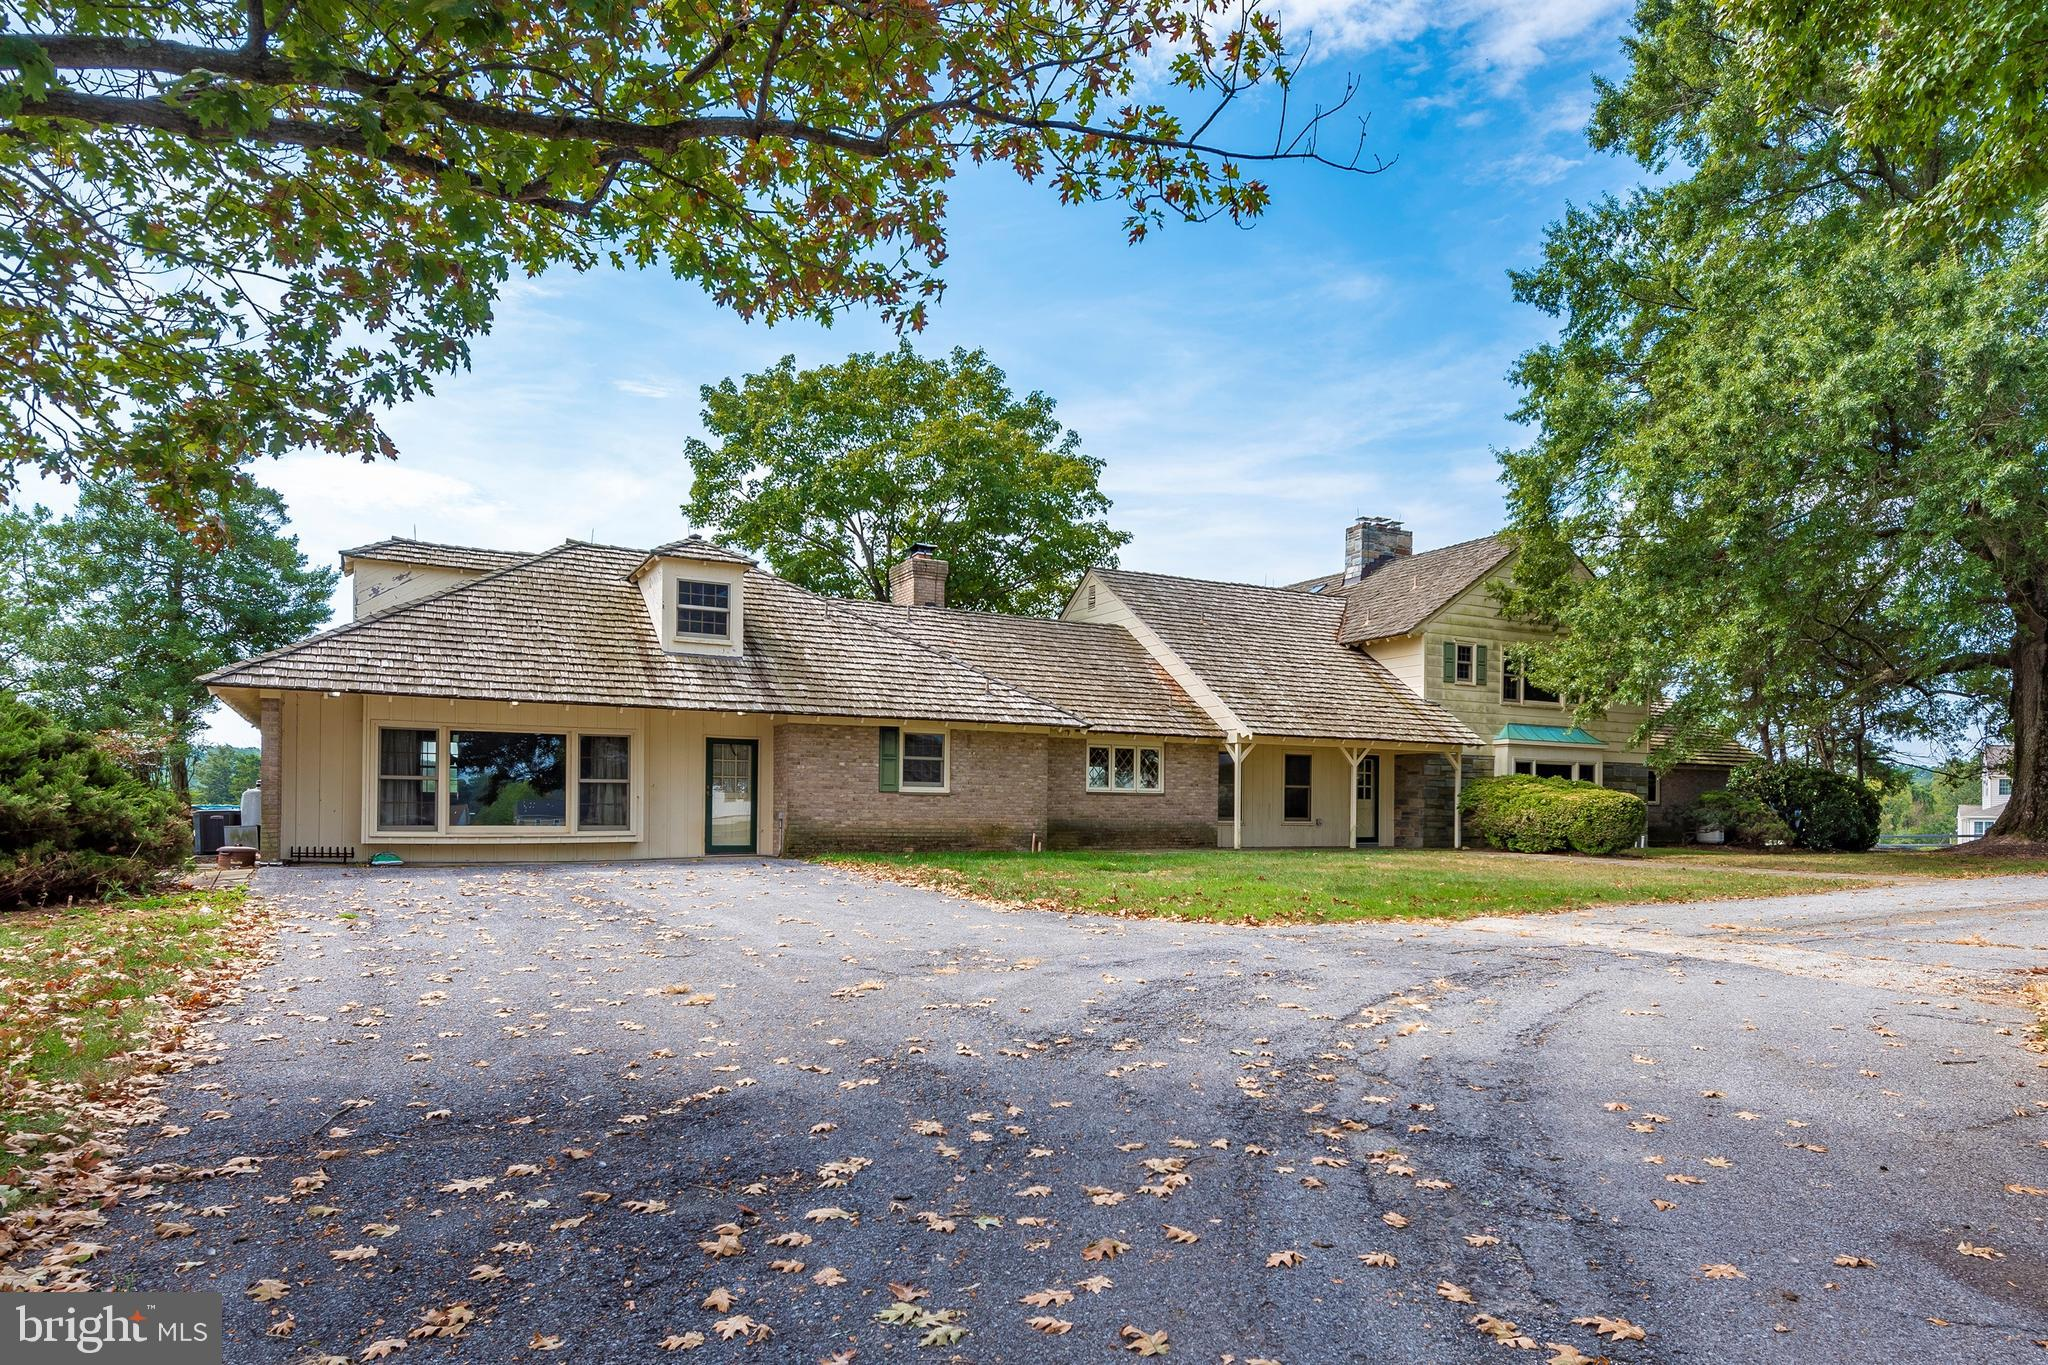 16501 BATCHELLORS FOREST ROAD, OLNEY, MD 20832